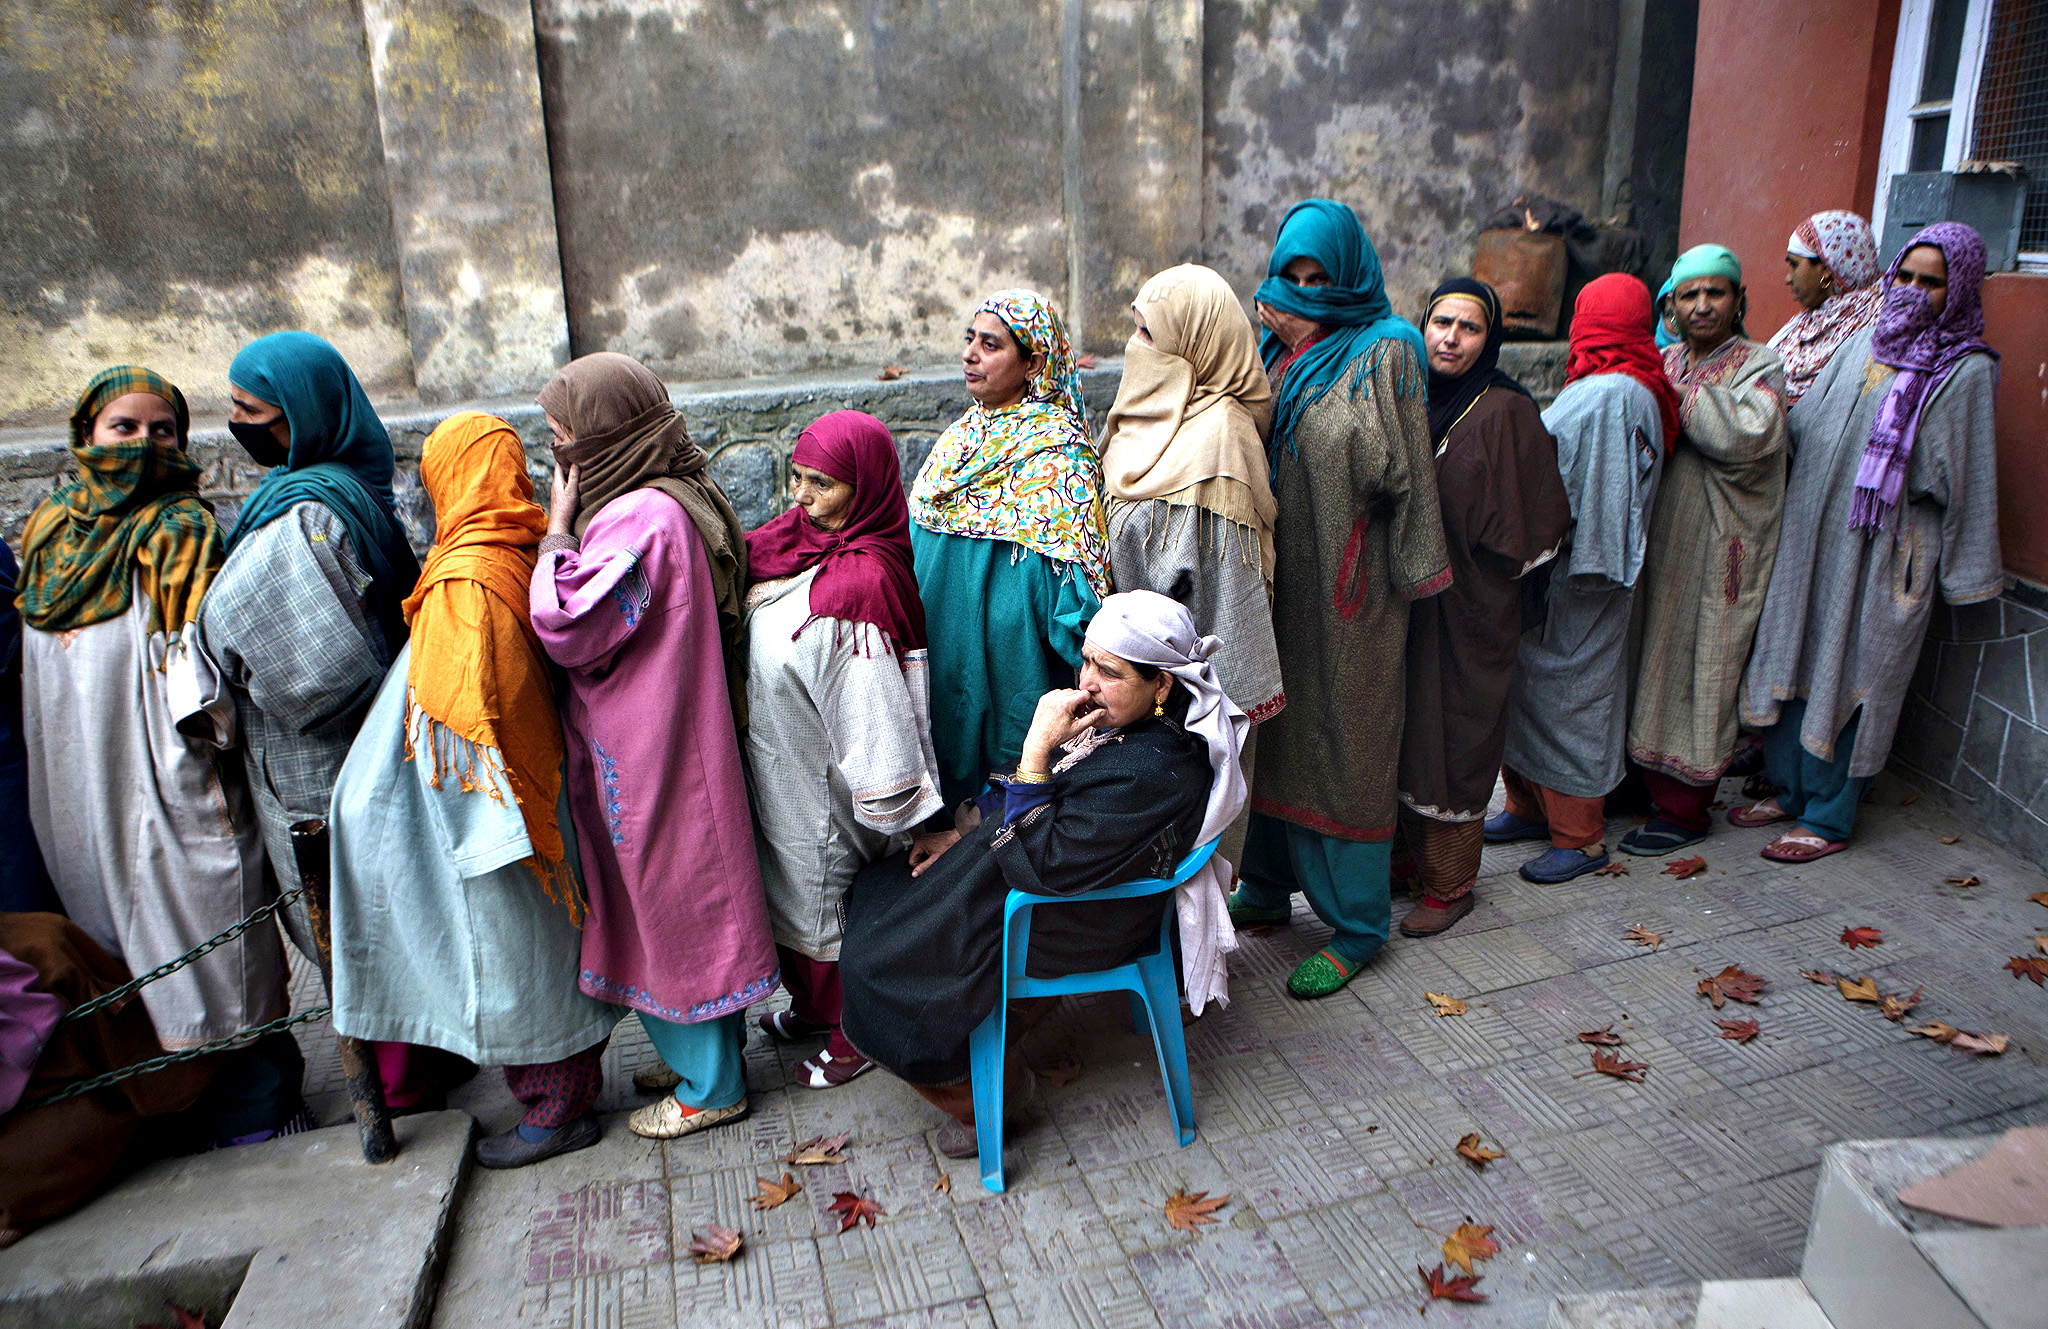 Kashmiri women wait in a queue to cast their votes during the first phase of polling to the Jammu and Kashmir state assembly elections in Lar, some 30 kilometers (19 miles) north of Srinagar, Indian controlled Kashmir, Tuesday, Nov. 25, 2014. The five phased voting is scheduled to be held till December 20 with the results expected on December 23.